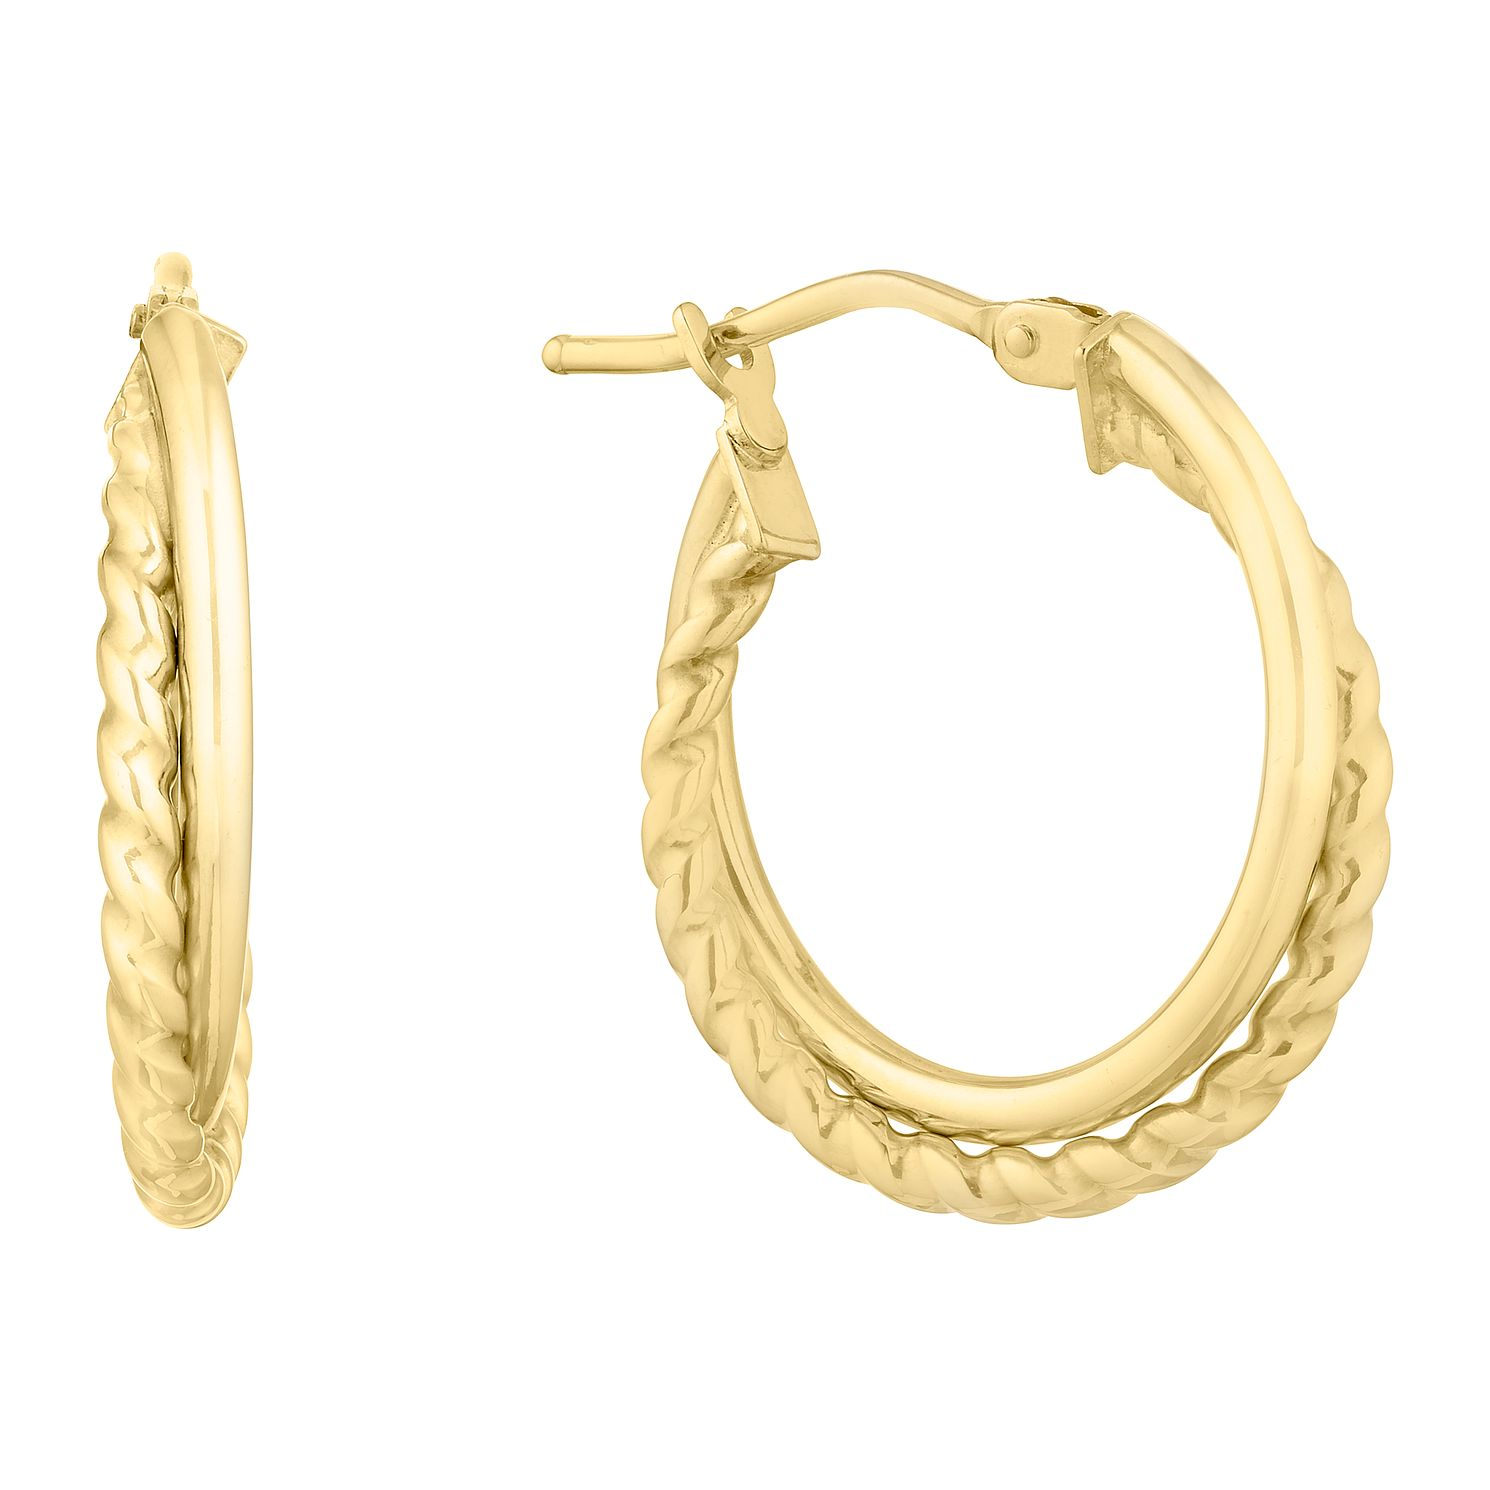 9ct Yellow Gold Double Row 14mm Hoop Earrings - Product number 9736867